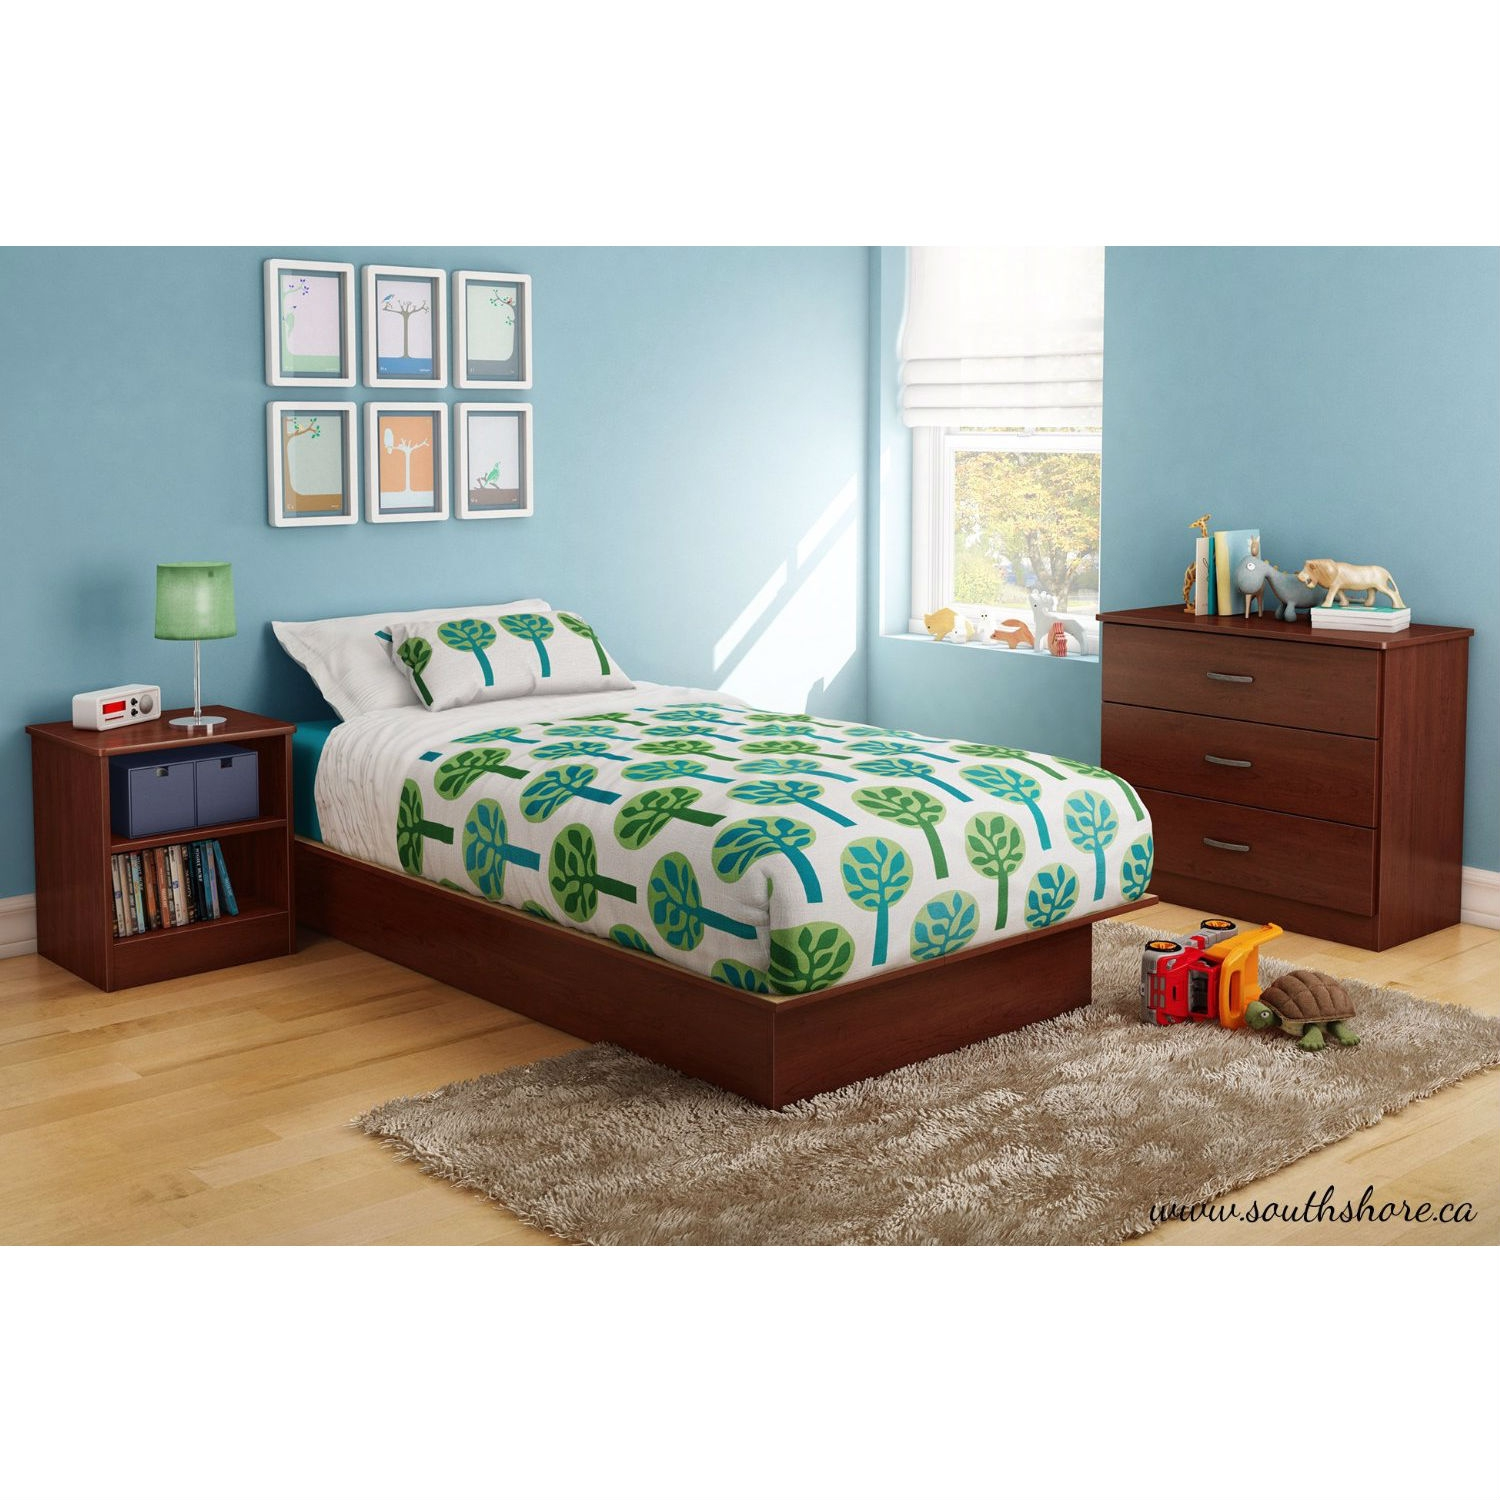 Twin size Platform Bed Frame in Royal Cherry Wood Finish ...